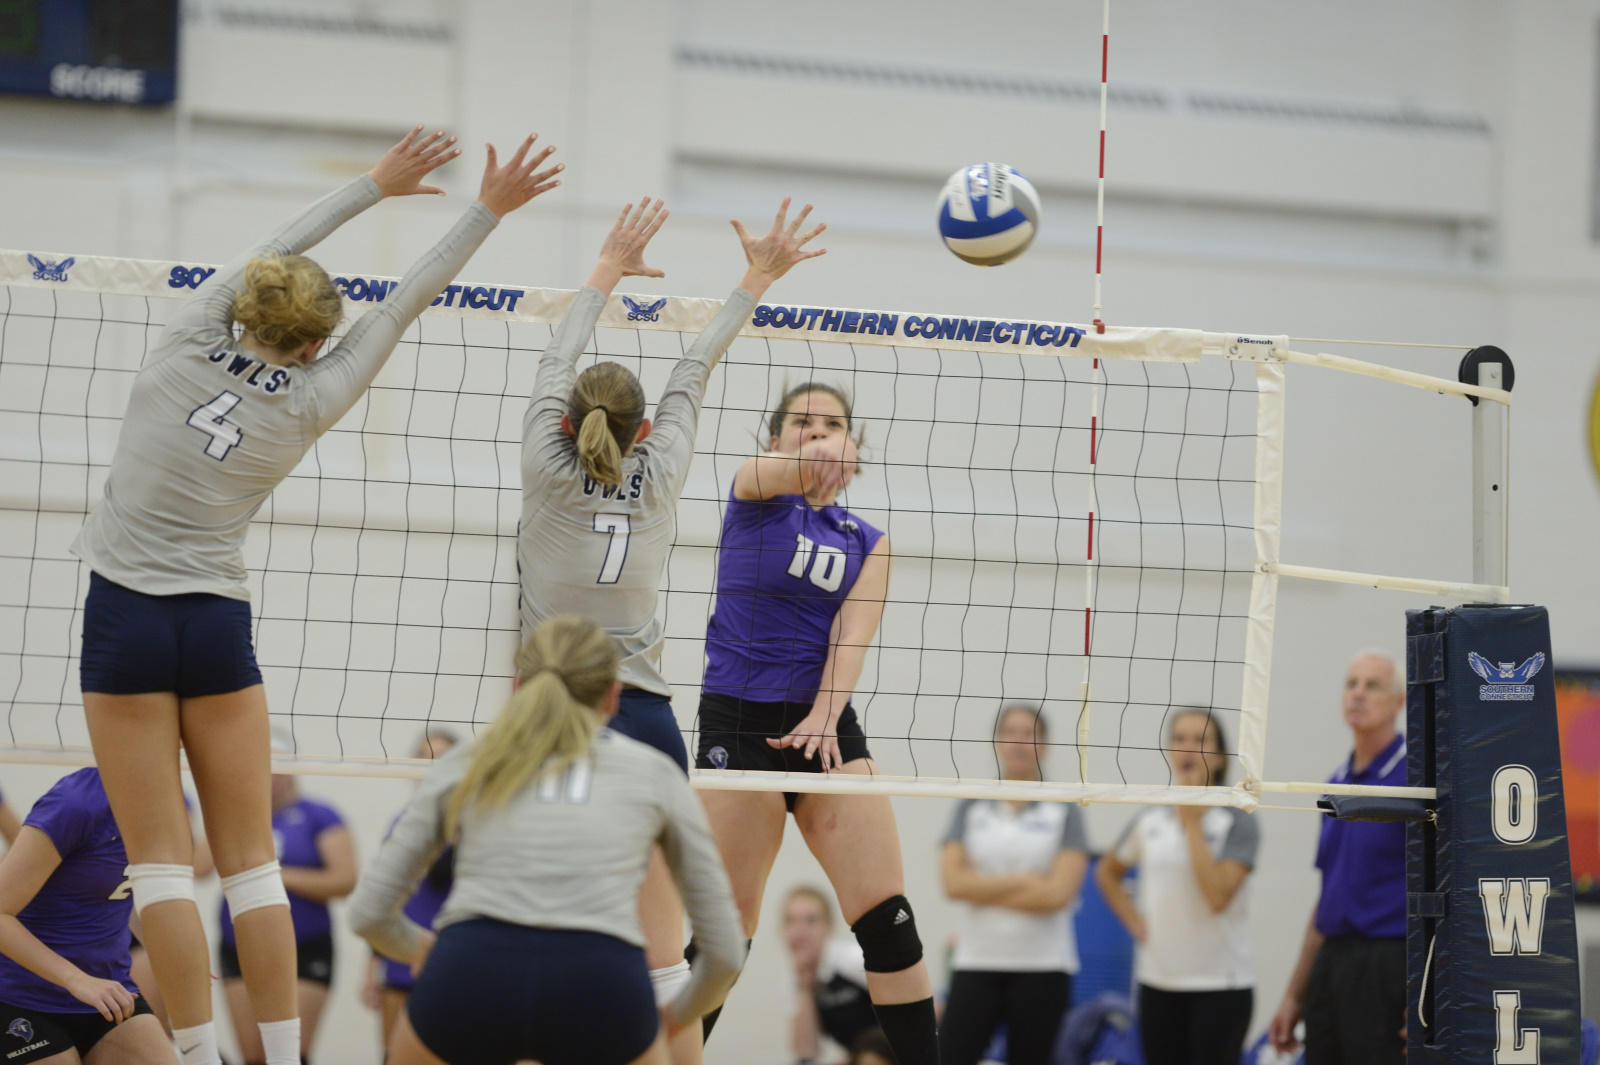 Purple Knights Even Season Volleyball Record At 8-8 And Move To 4-1 In The ECC With Sweep At Queens (N.Y.)